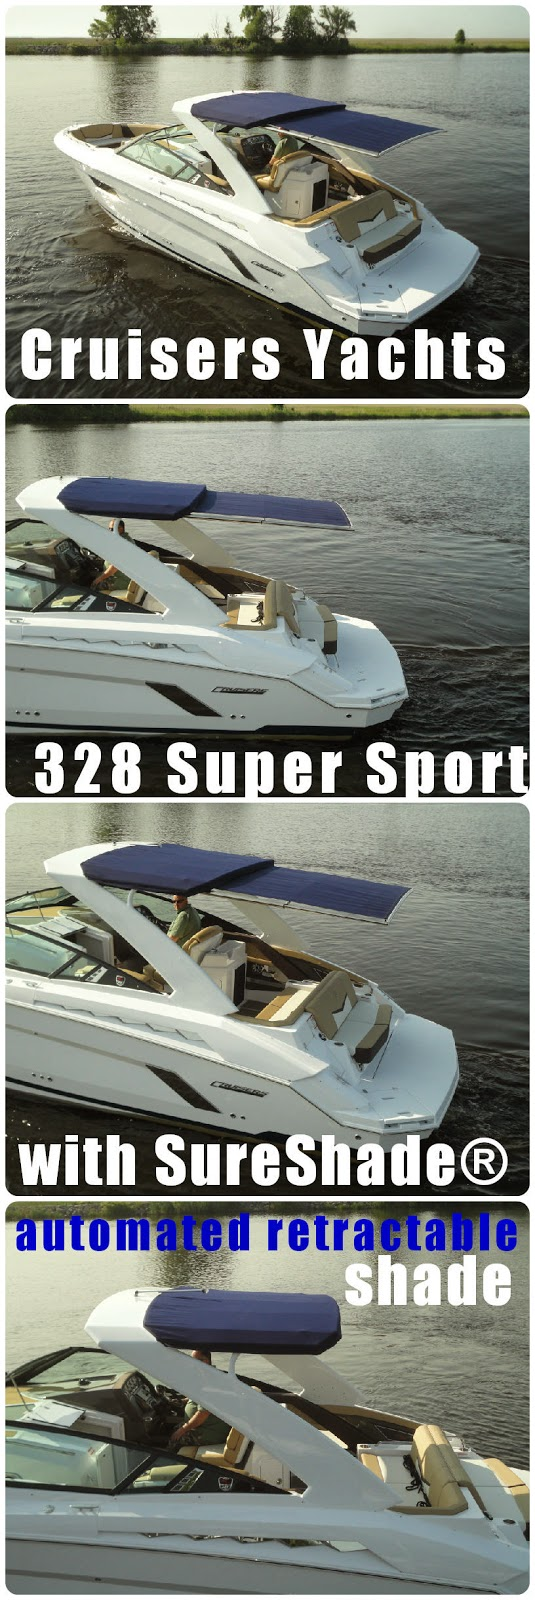 Cruisers Yachts 328 Super Sport With Automated Retractable Sunshade For Full Shade Coverage In Cockpit Of The Sportboat Cool Boats Yacht Boat Brands